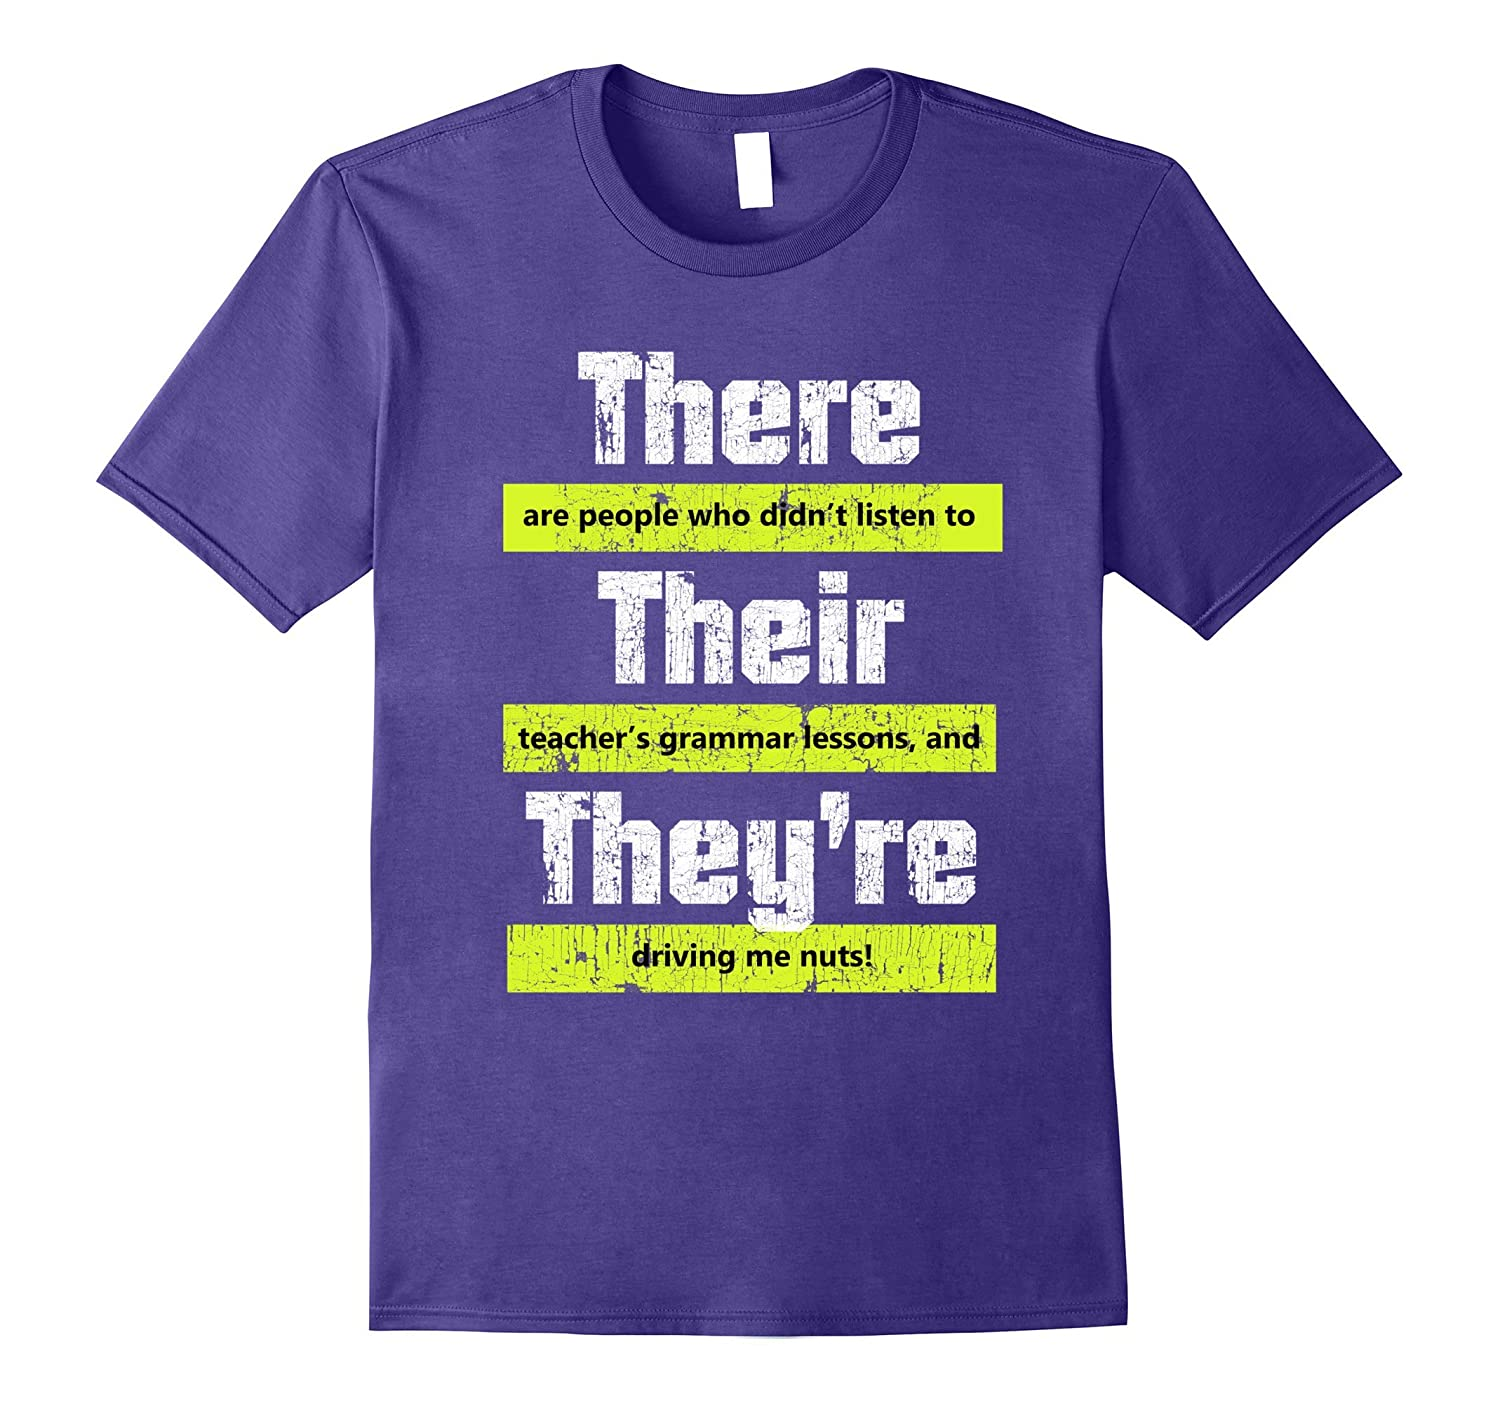 Funny English Teacher Grammar T-Shirt for Men and Women-ah my shirt one gift